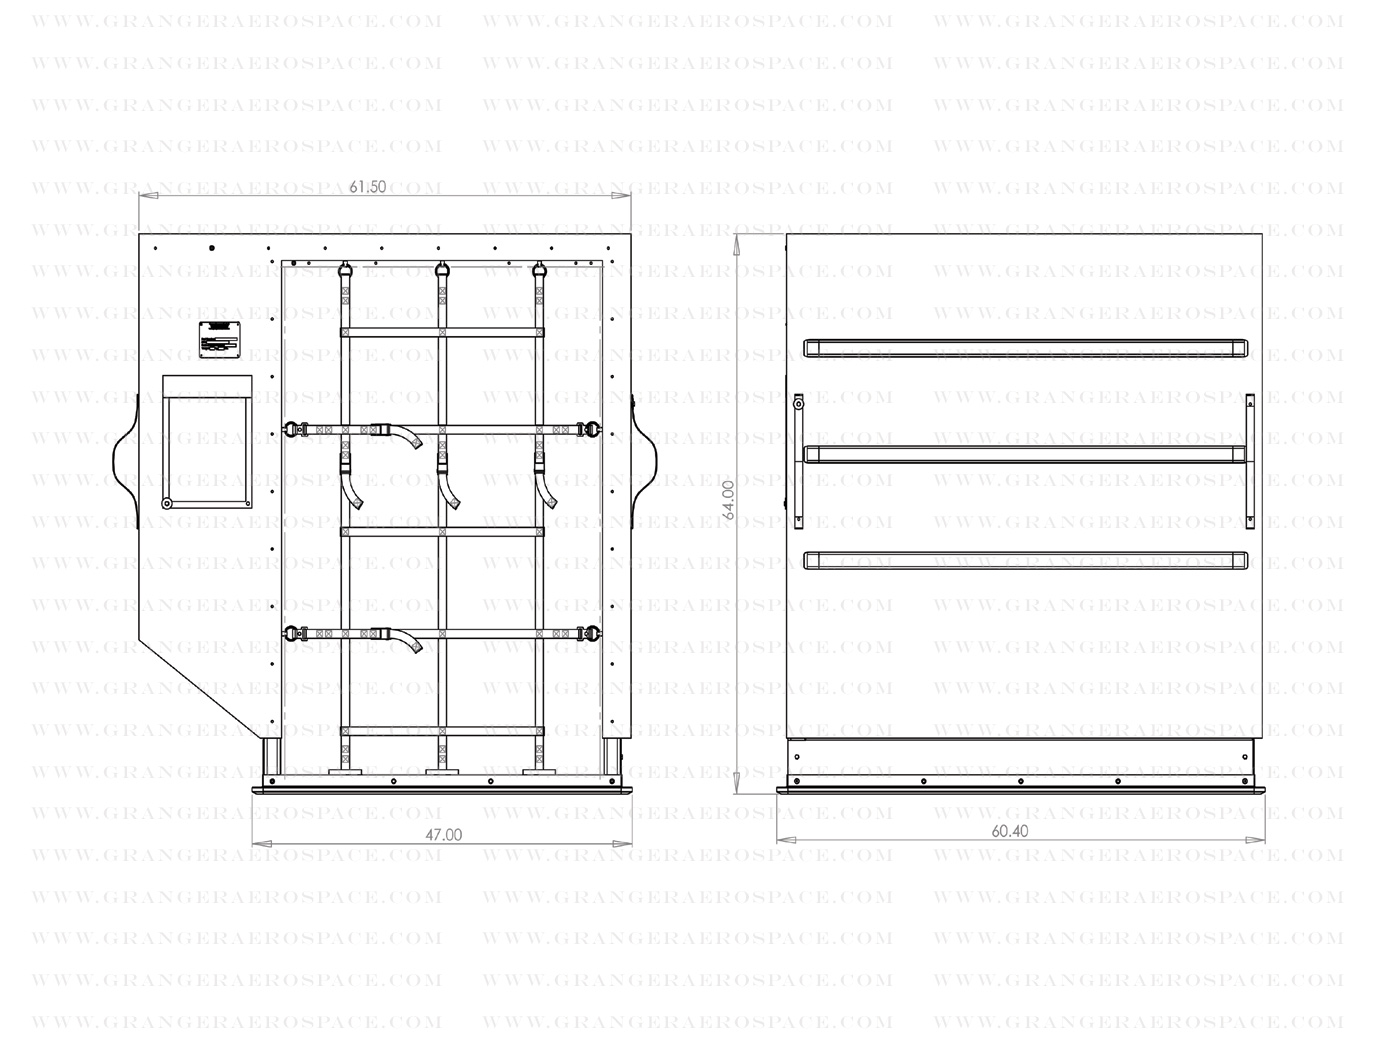 LD 2 Dimensions, LD 2 Air Cargo Container Dimensions, DPE dimensions